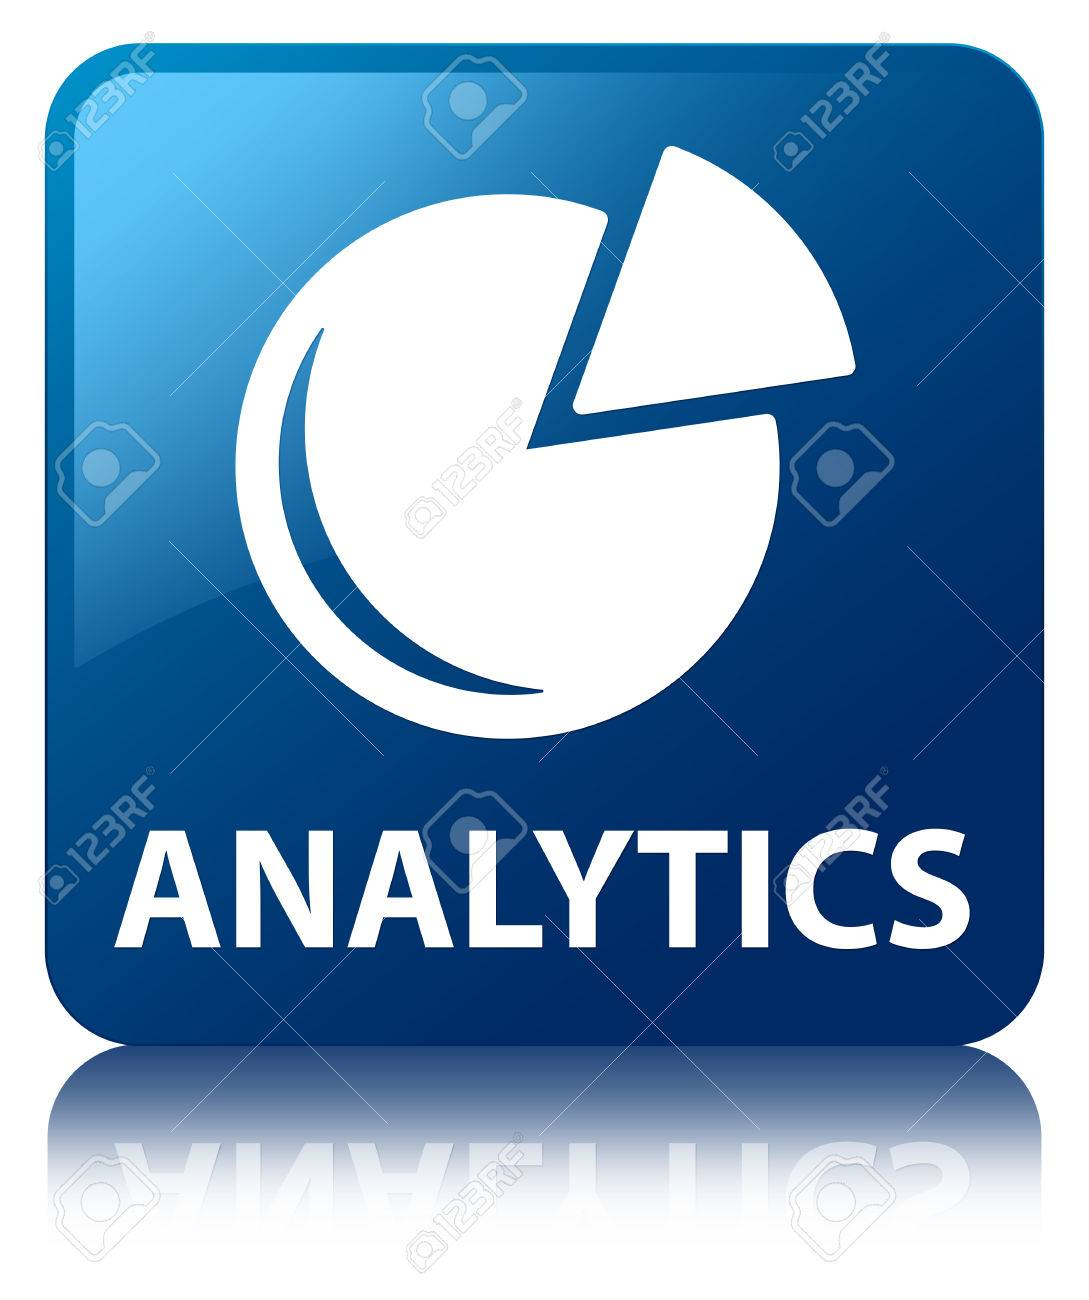 Analytics  graph icon  glossy blue reflected square button Stock Photo - 22230994